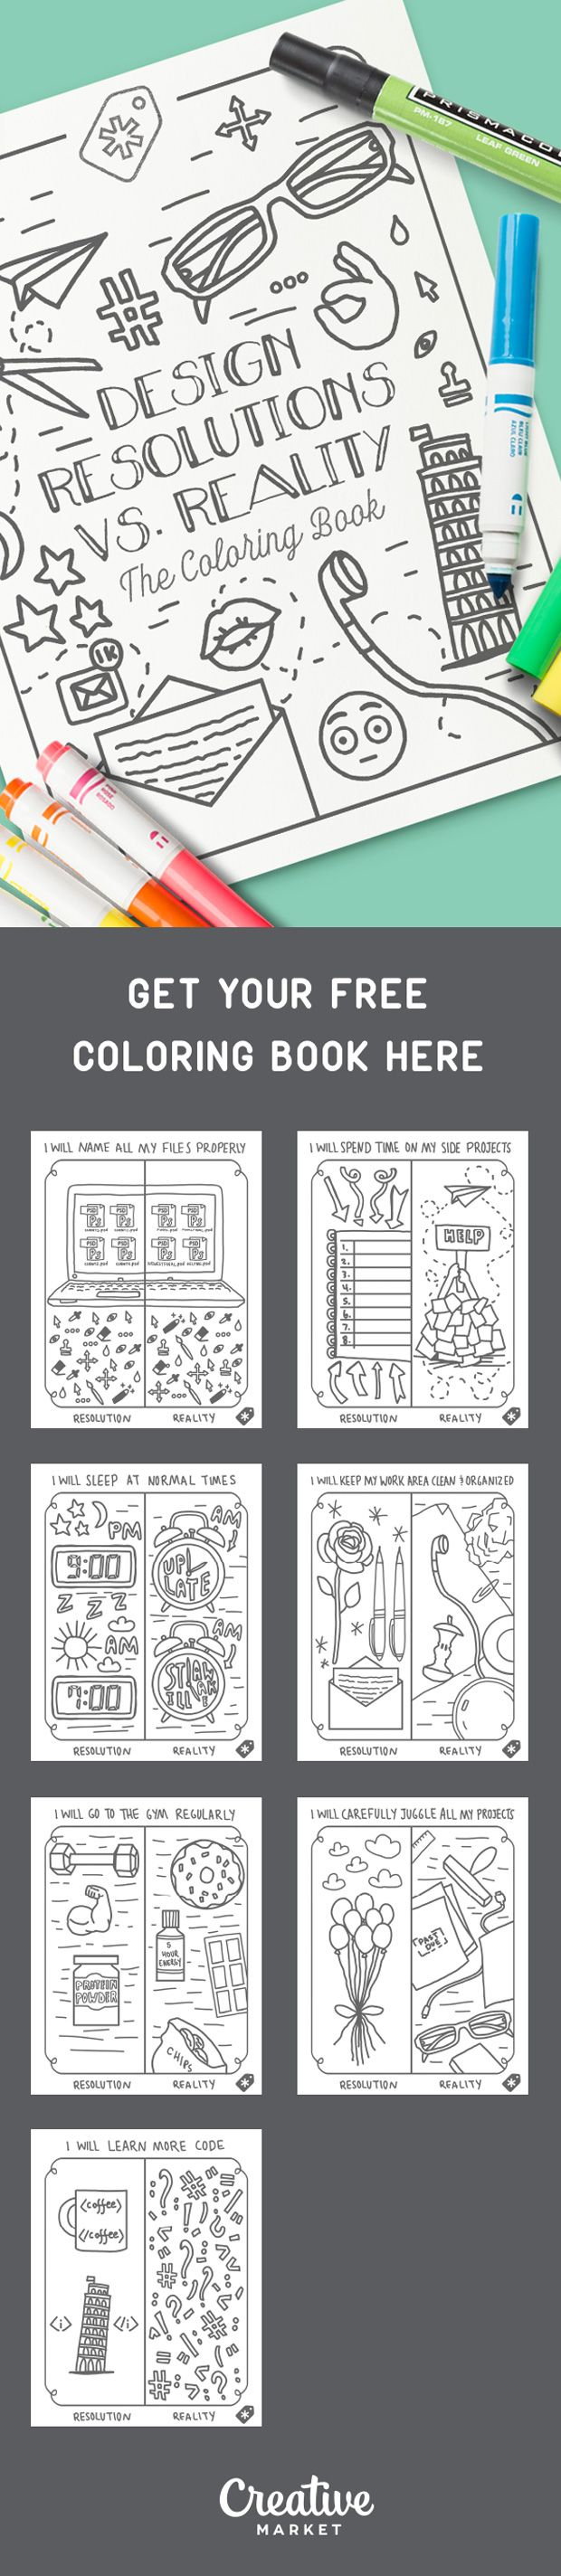 Whitman hot wheels coloring book - Free Coloring Book Design Resolutions Vs Reality